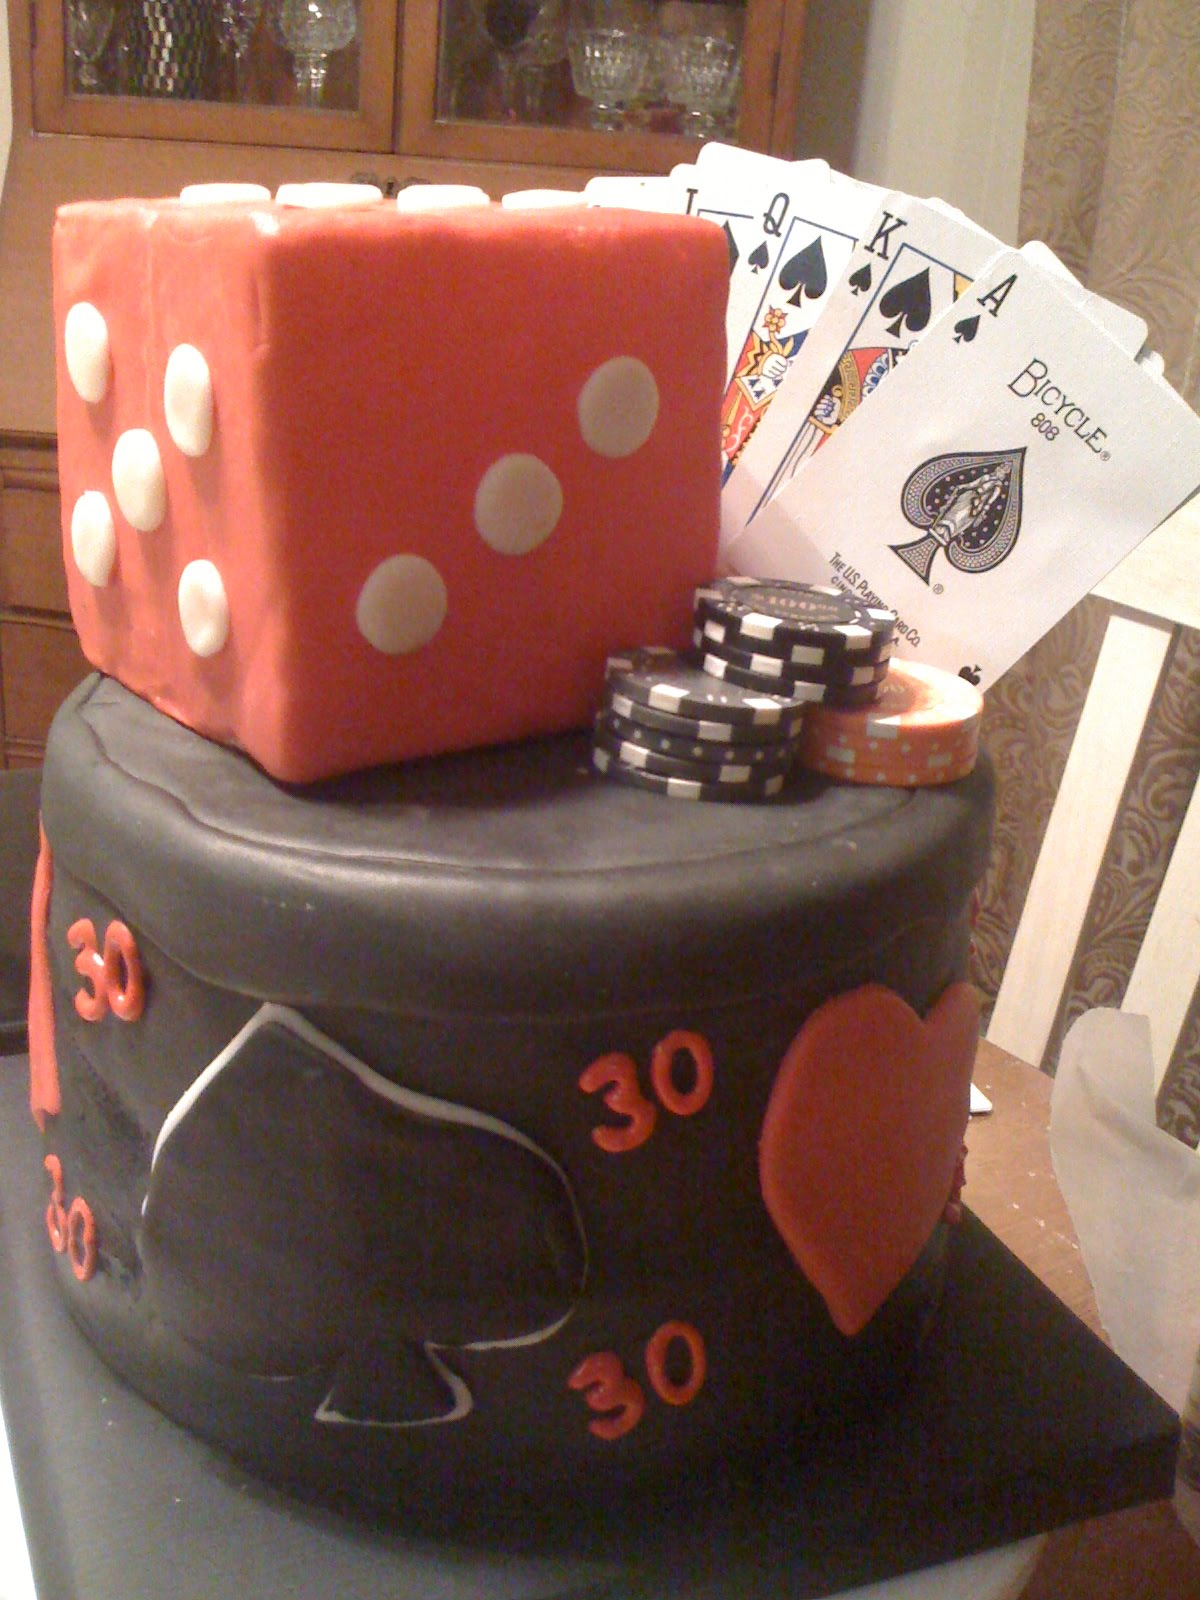 My Friend Greg Is Turning 30 And His Wonderful Wife Throwing A Casino Themed Evening Of Wagering Whiskey She Really Wanted Cake To Be Crative